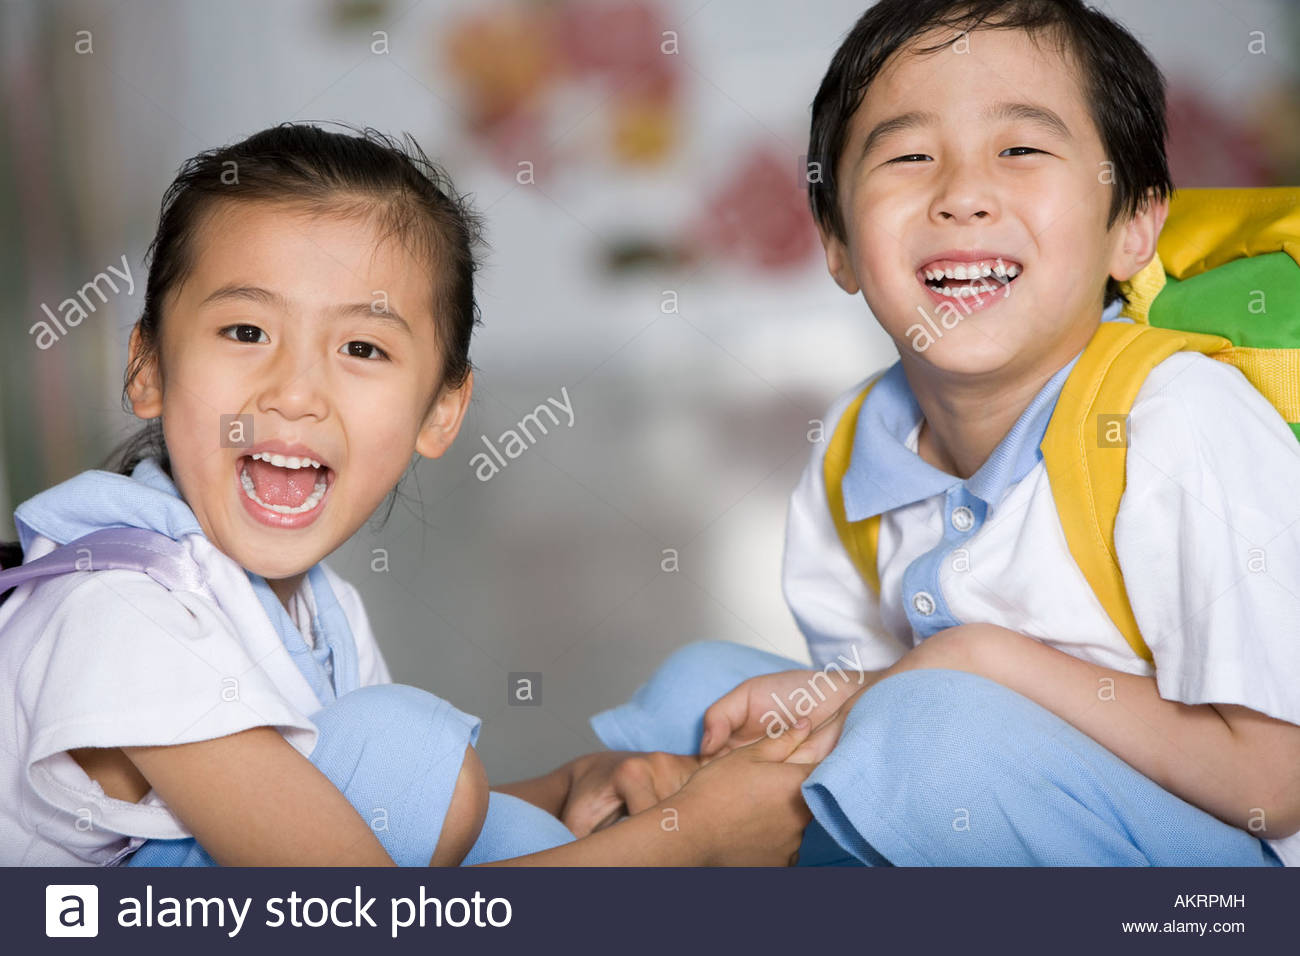 Two primary school students - Stock Image